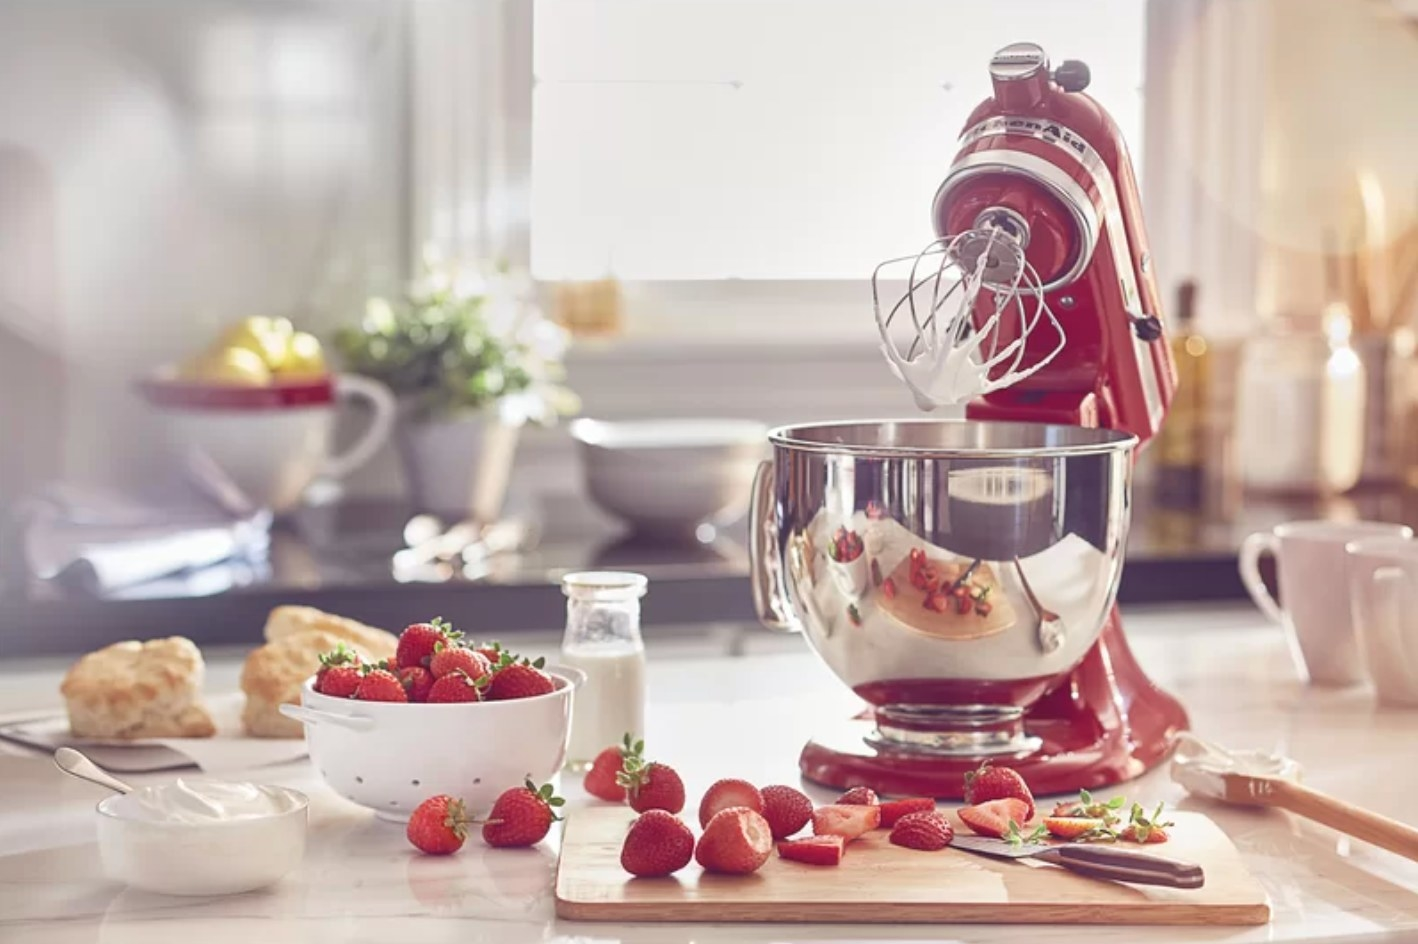 The KitchenAid stand mixer in red